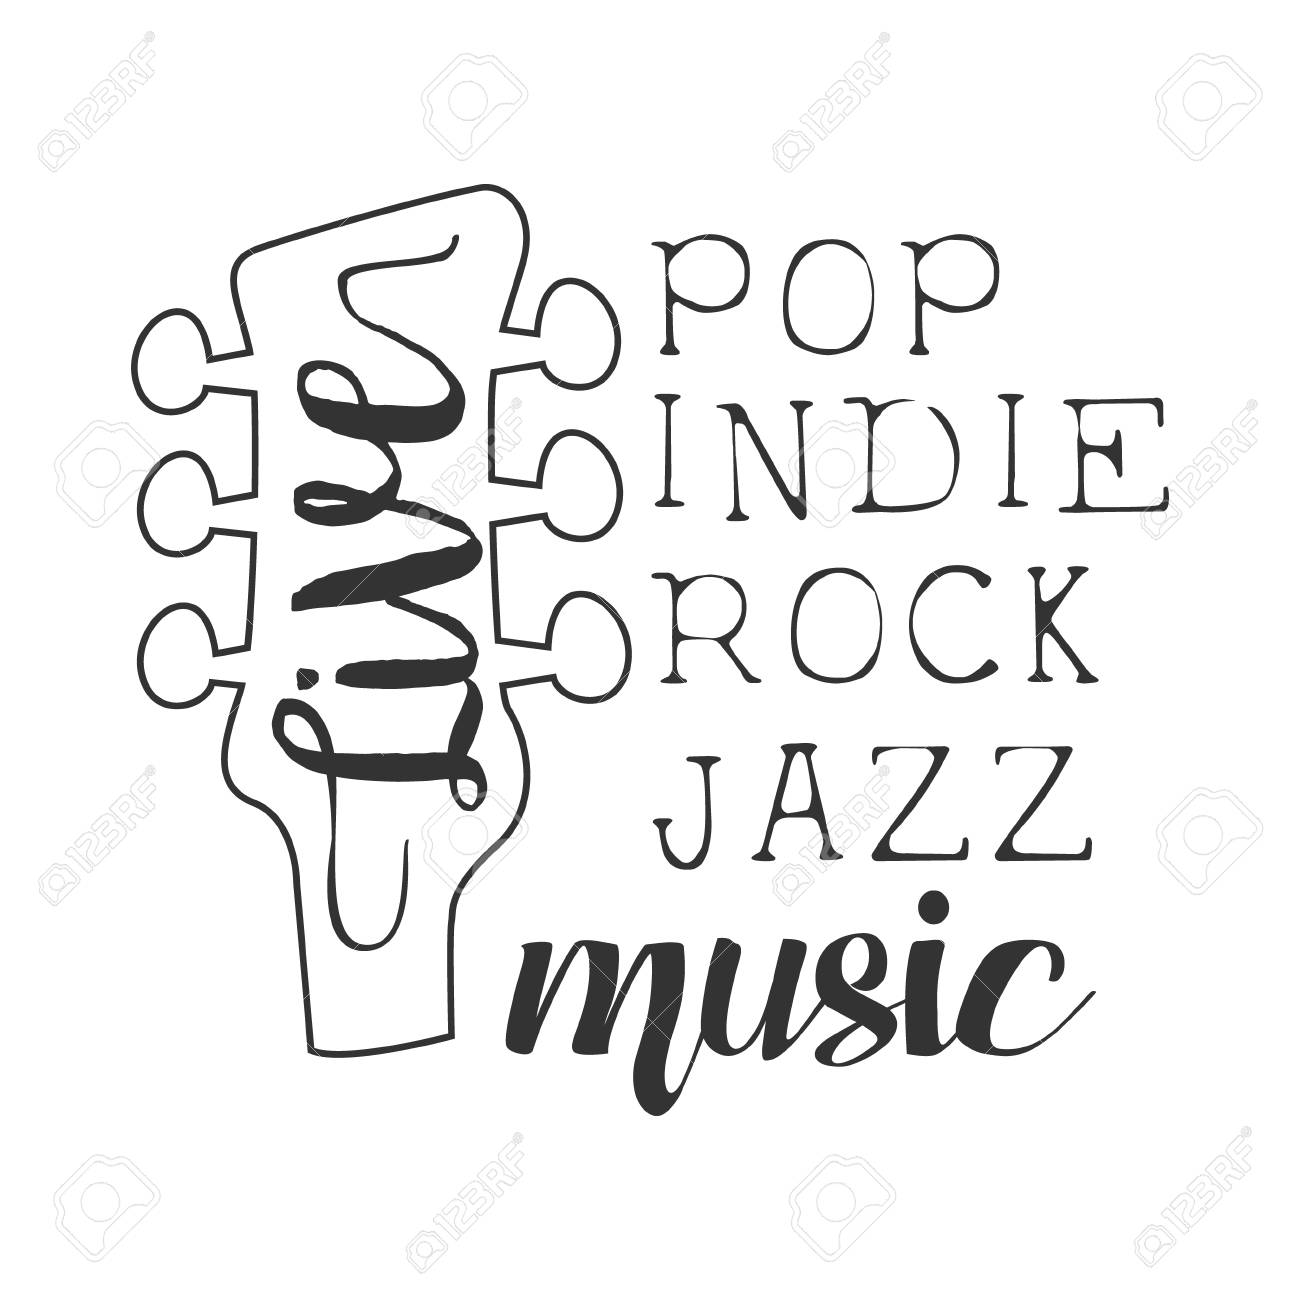 Pop, Rock, Indie, Jazz Live Music Concert Black And White Poster With Calligraphic Text And Guitar Headstock - 72268682